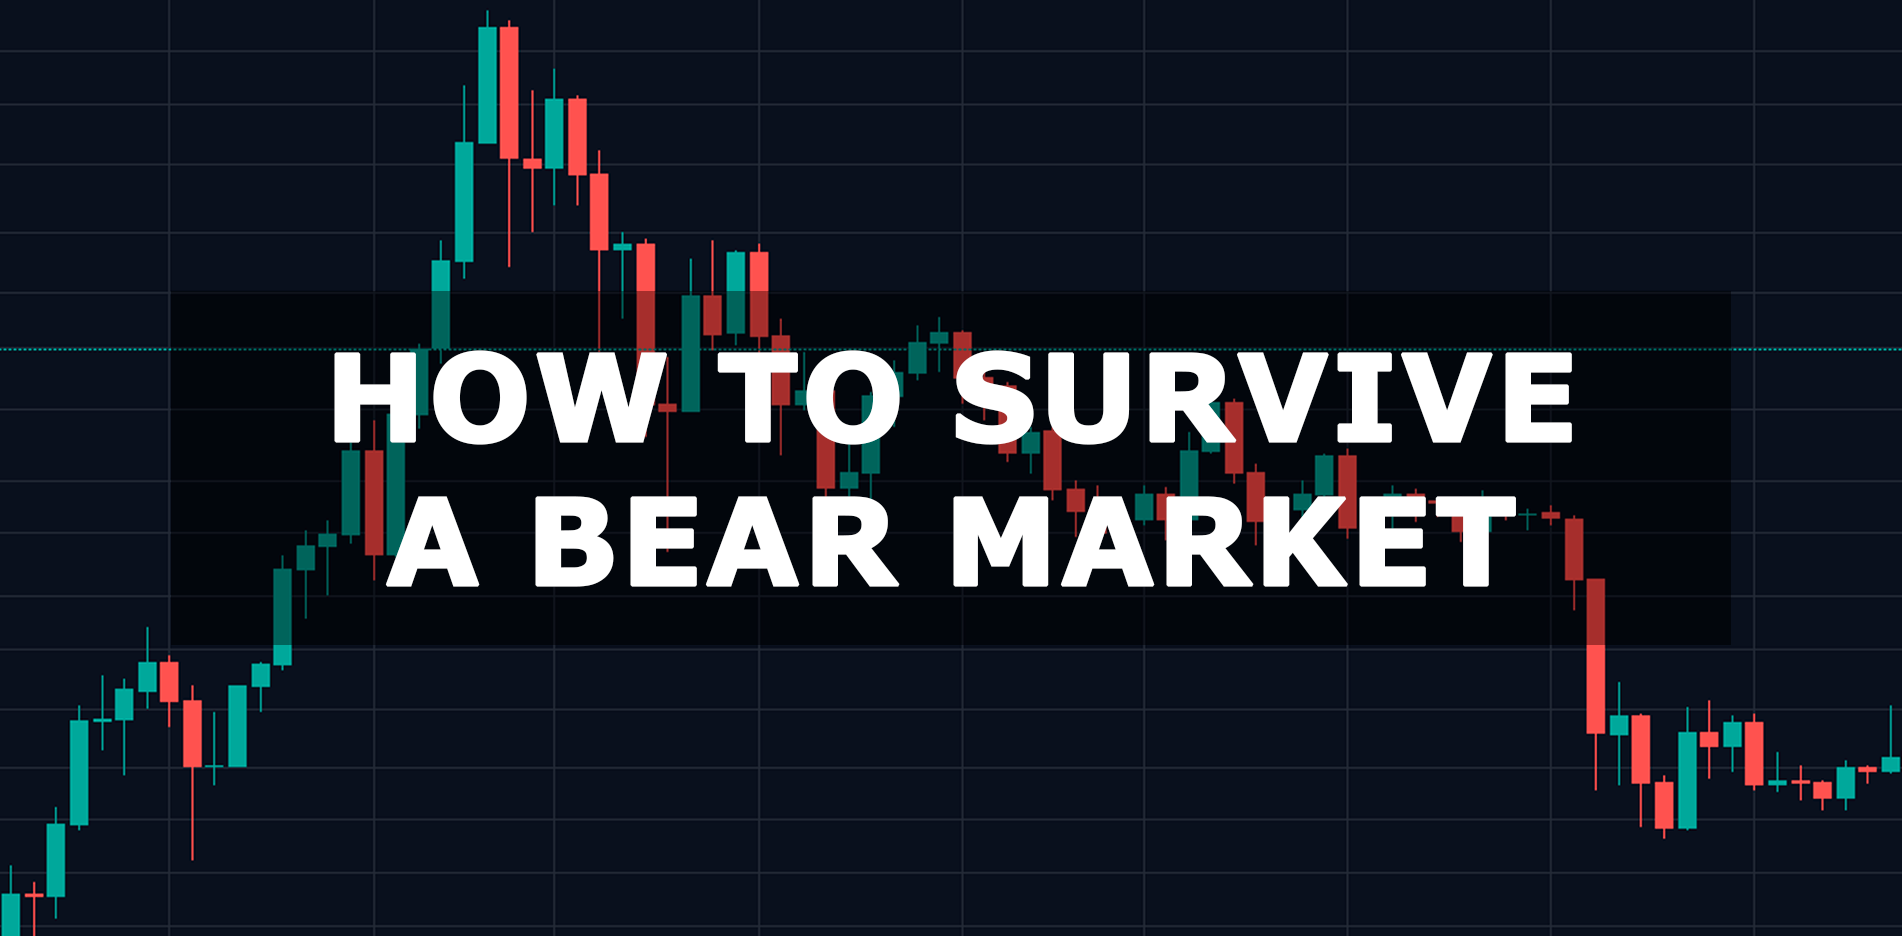 How to survive a bear market